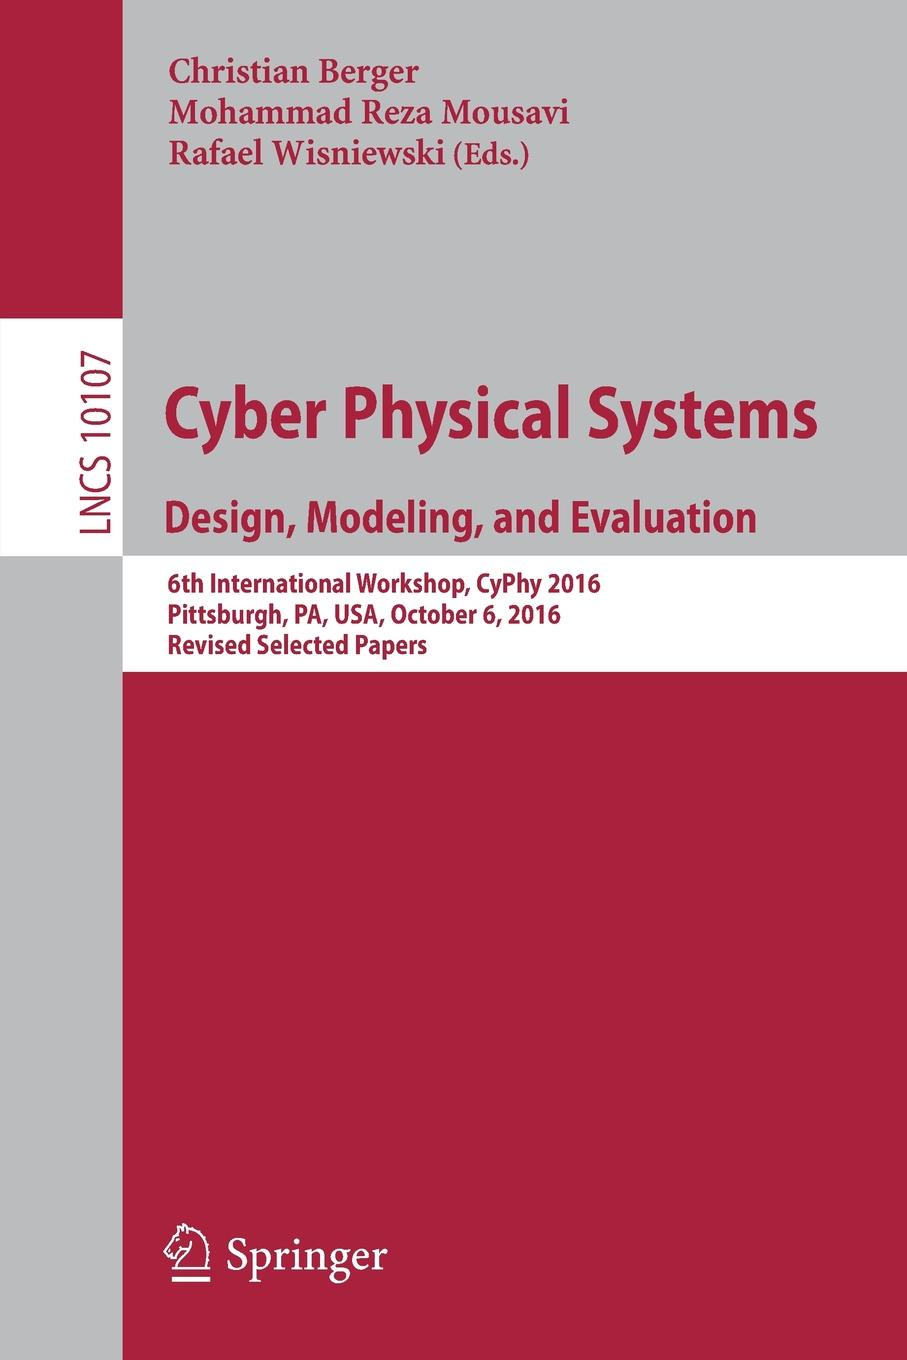 Cyber Physical Systems. Design, Modeling, and Evaluation. 6th International Workshop, CyPhy 2016, Pittsburgh, PA, USA, October 6, 2016, Revised Selected Papers cyber physical systems of systems foundations a conceptual model and some derivations the amadeos legacy